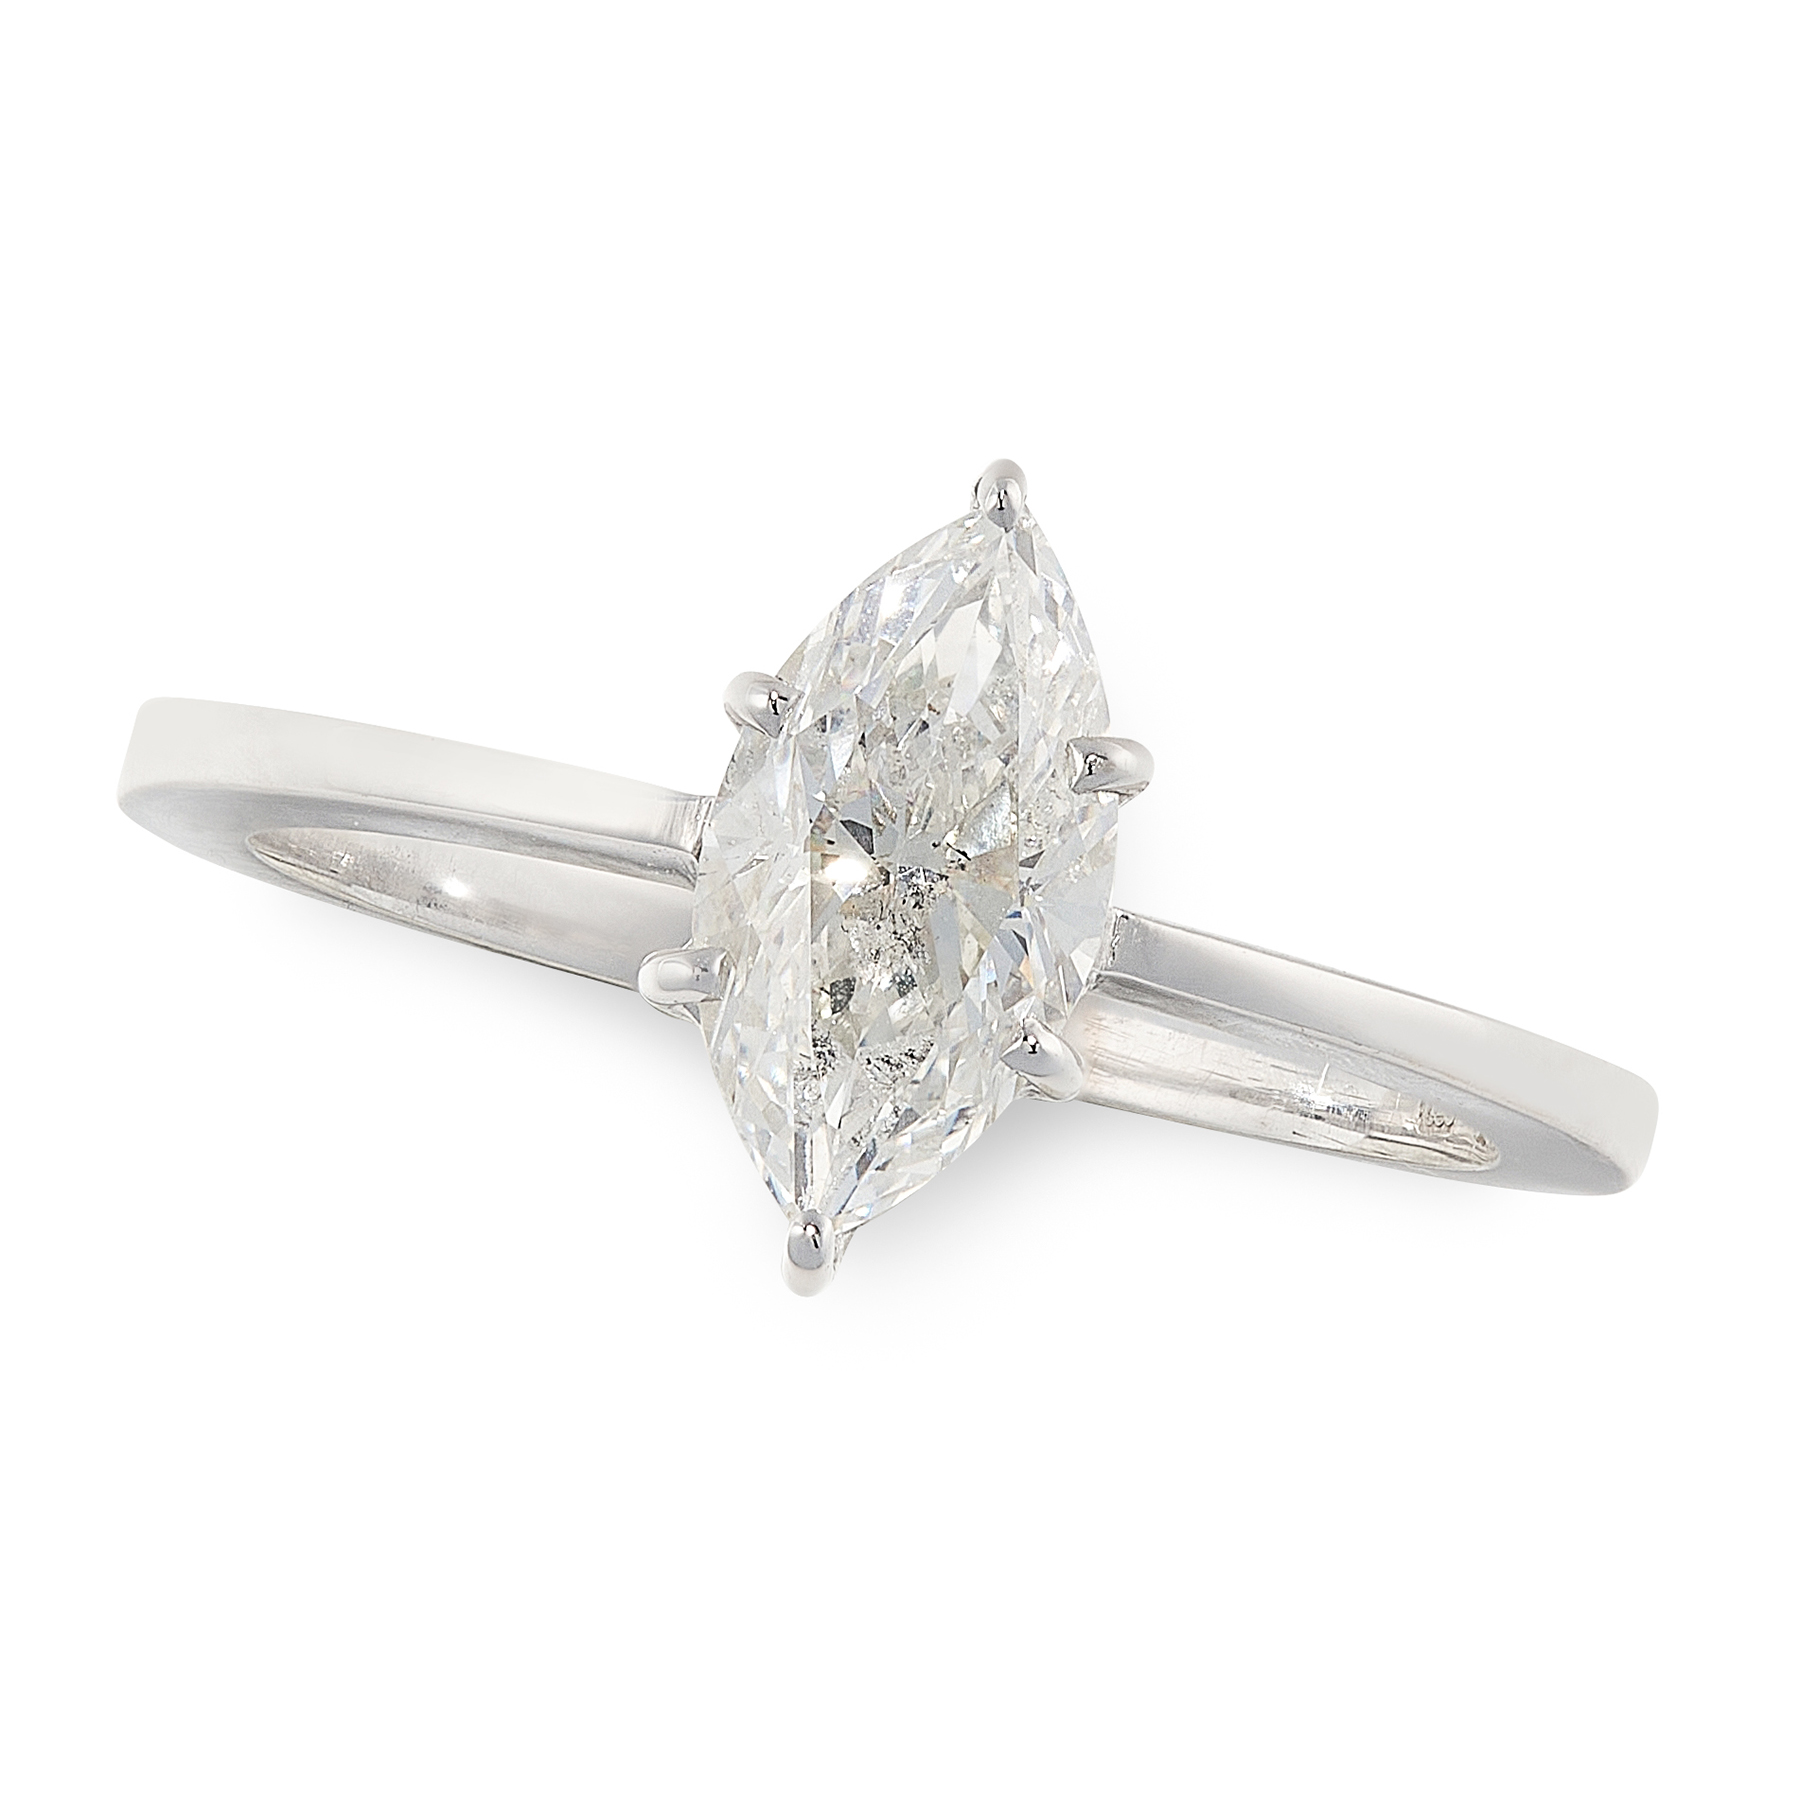 A DIAMOND SOLITAIRE RING in 18ct white gold, set with a marquise cut diamond of 1.13 carats, stamped